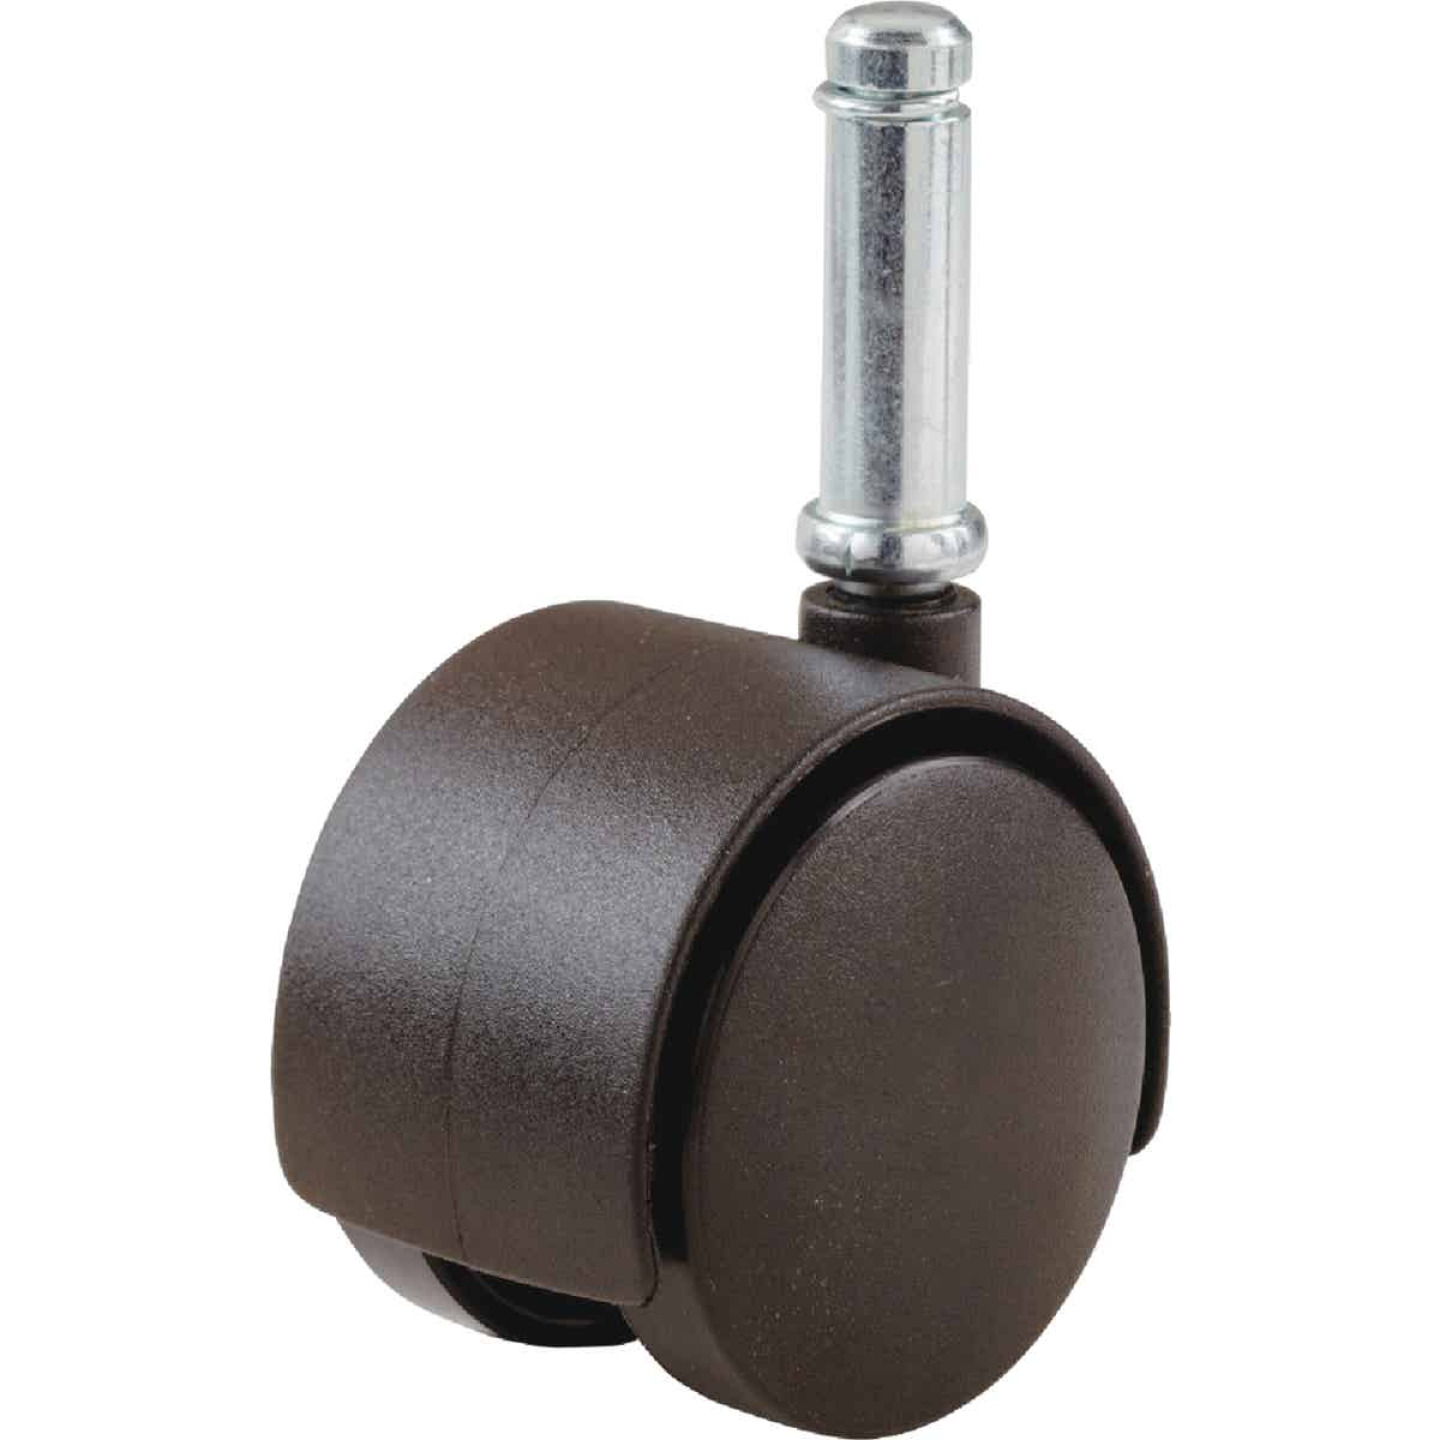 Do it 2 In. Dia. Brown Twin Wheel Caster with 7/8 In. Stem (1-Count) Image 1